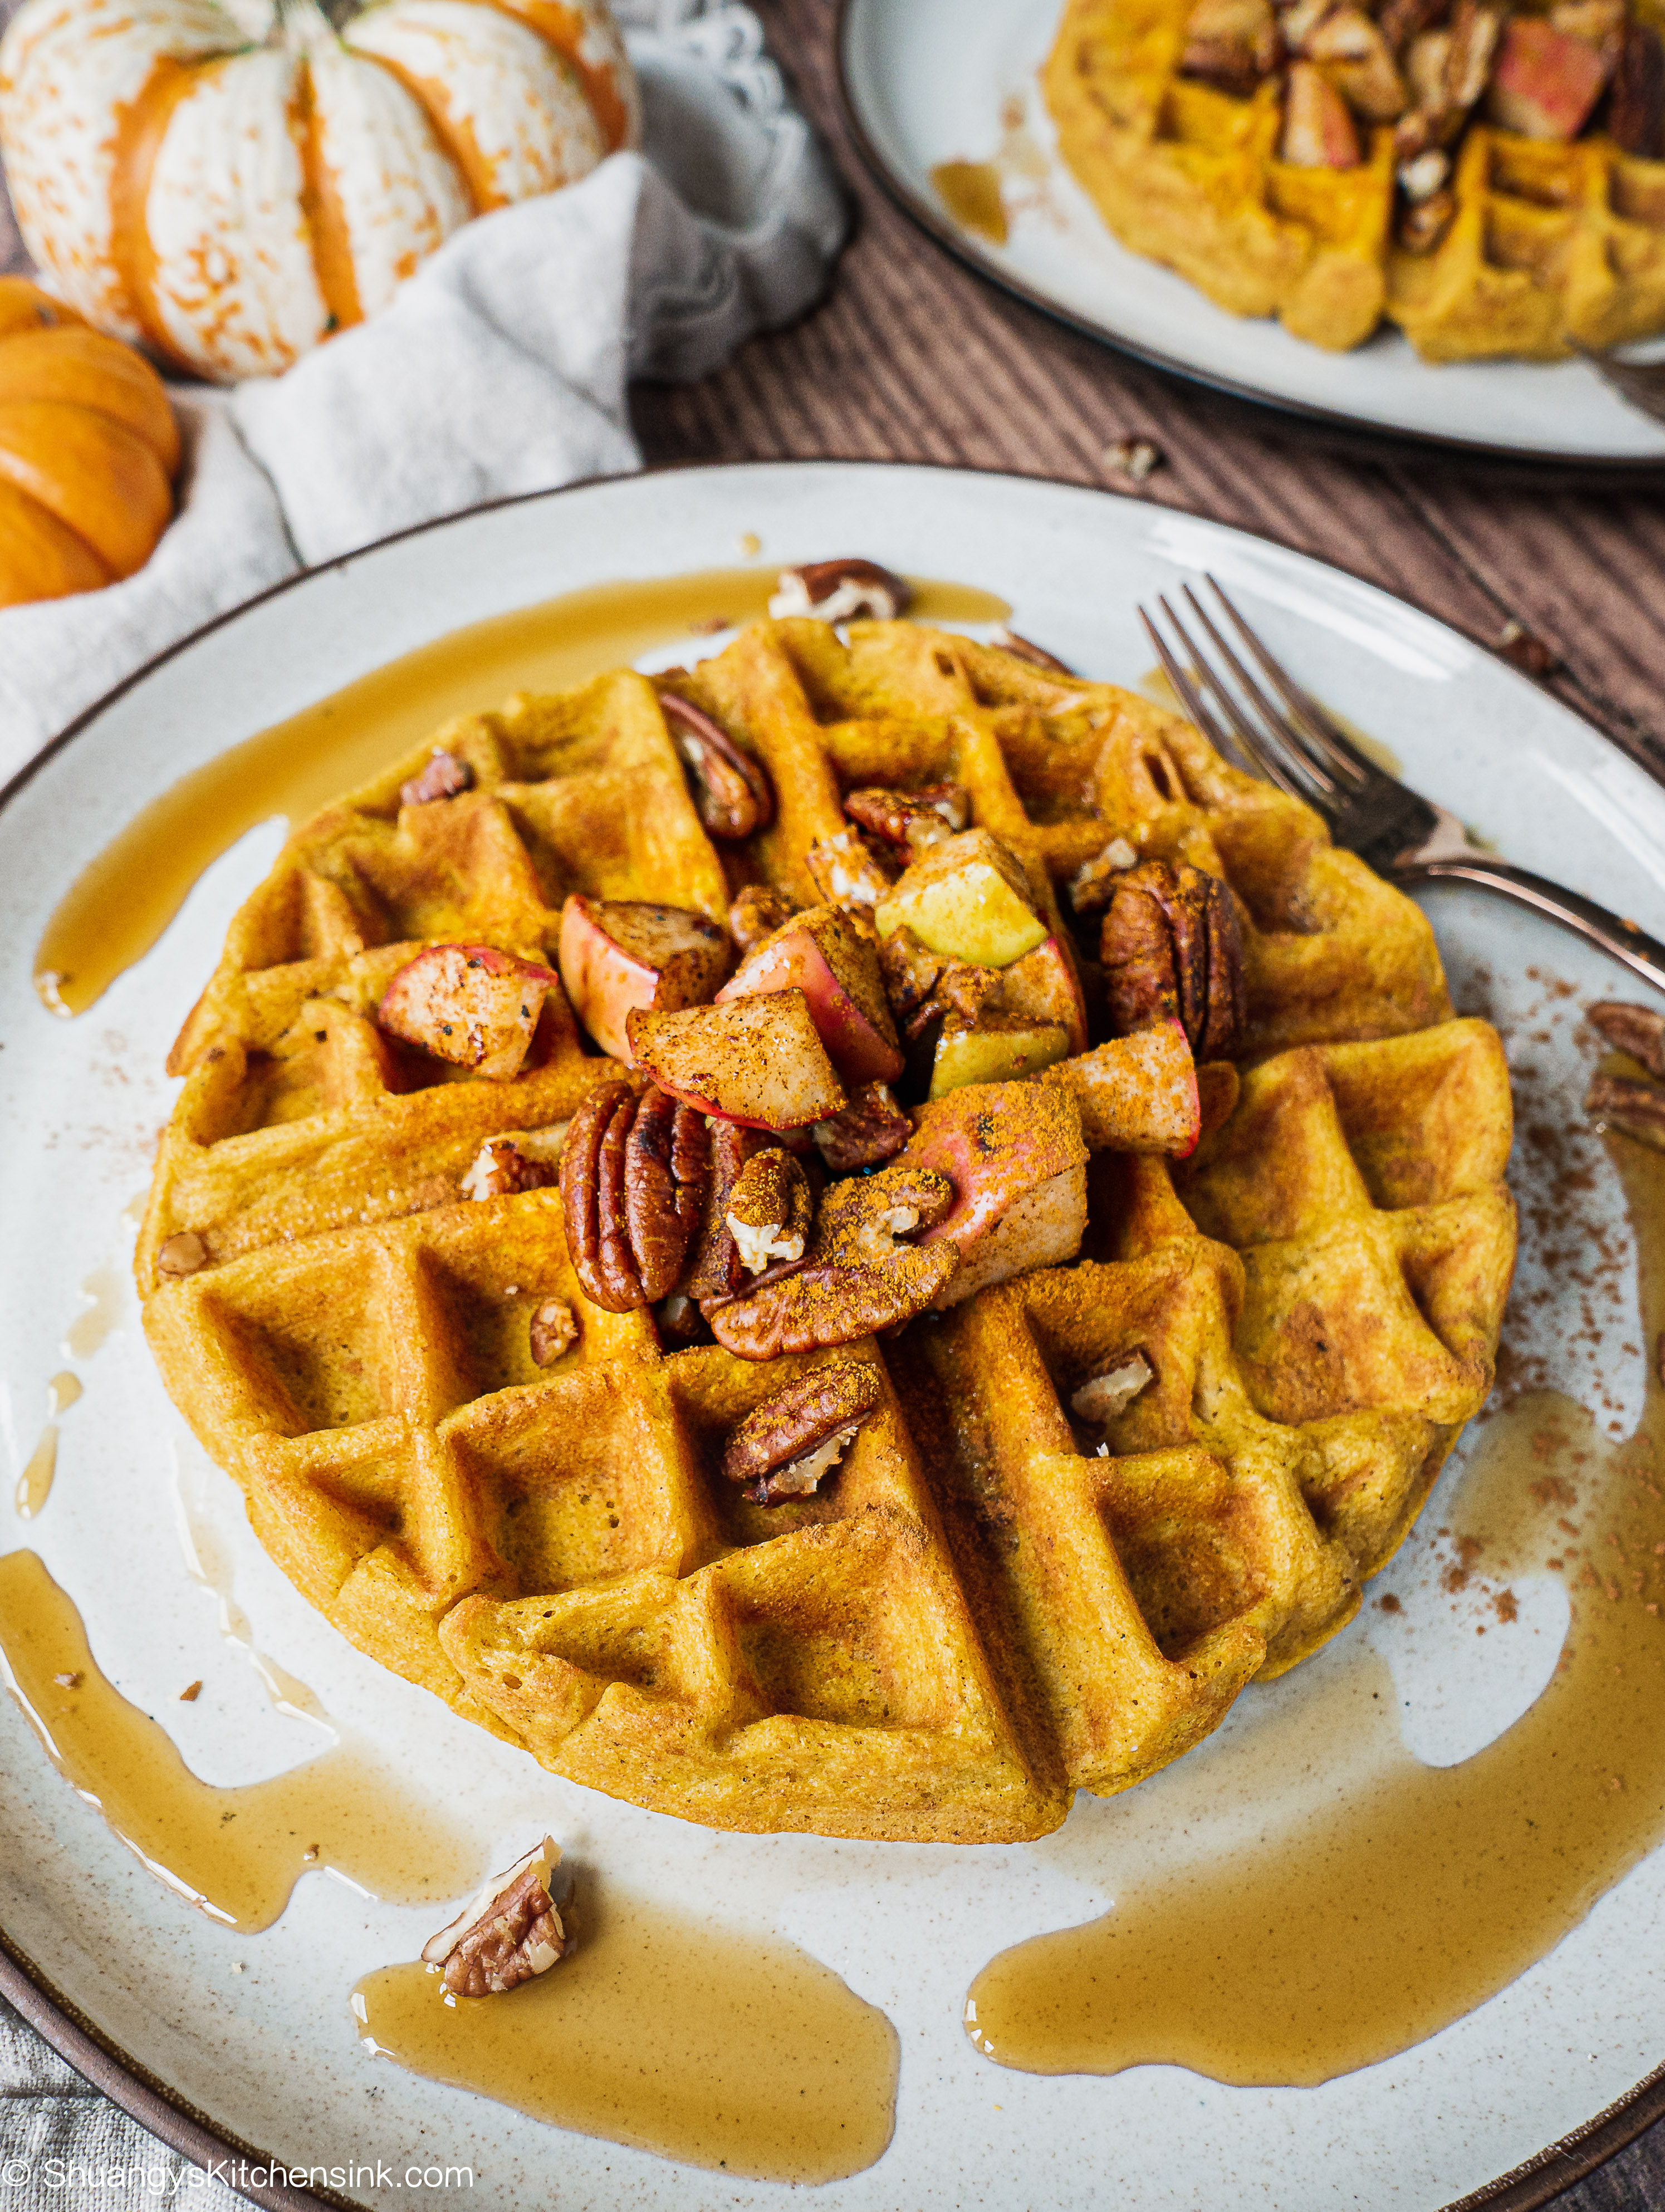 A paleo pumpkin waffle topped with sautéed apples and spiced pecans. Also drizzle of maple syrup. There is another waffle in the background and a little pumpkin on the kitchen towel.